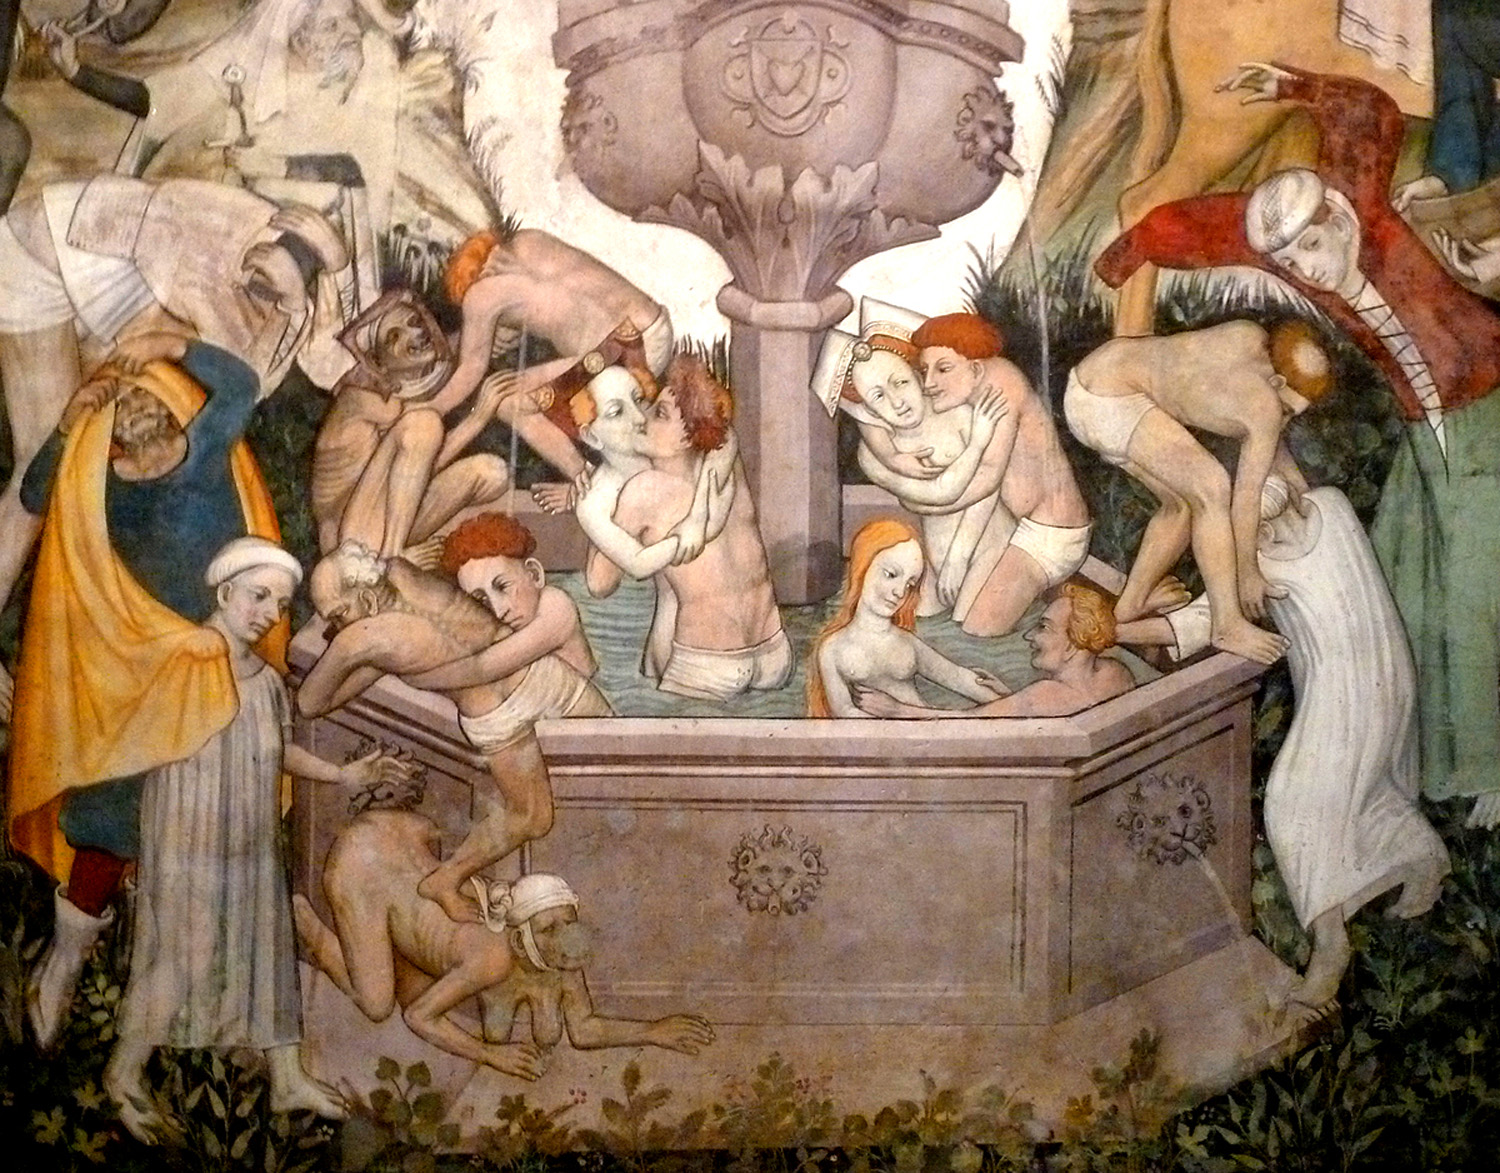 ANONYMOUS The Search for the Fountain of Youth. Fresco, circa 1416-17. Photo: Author.